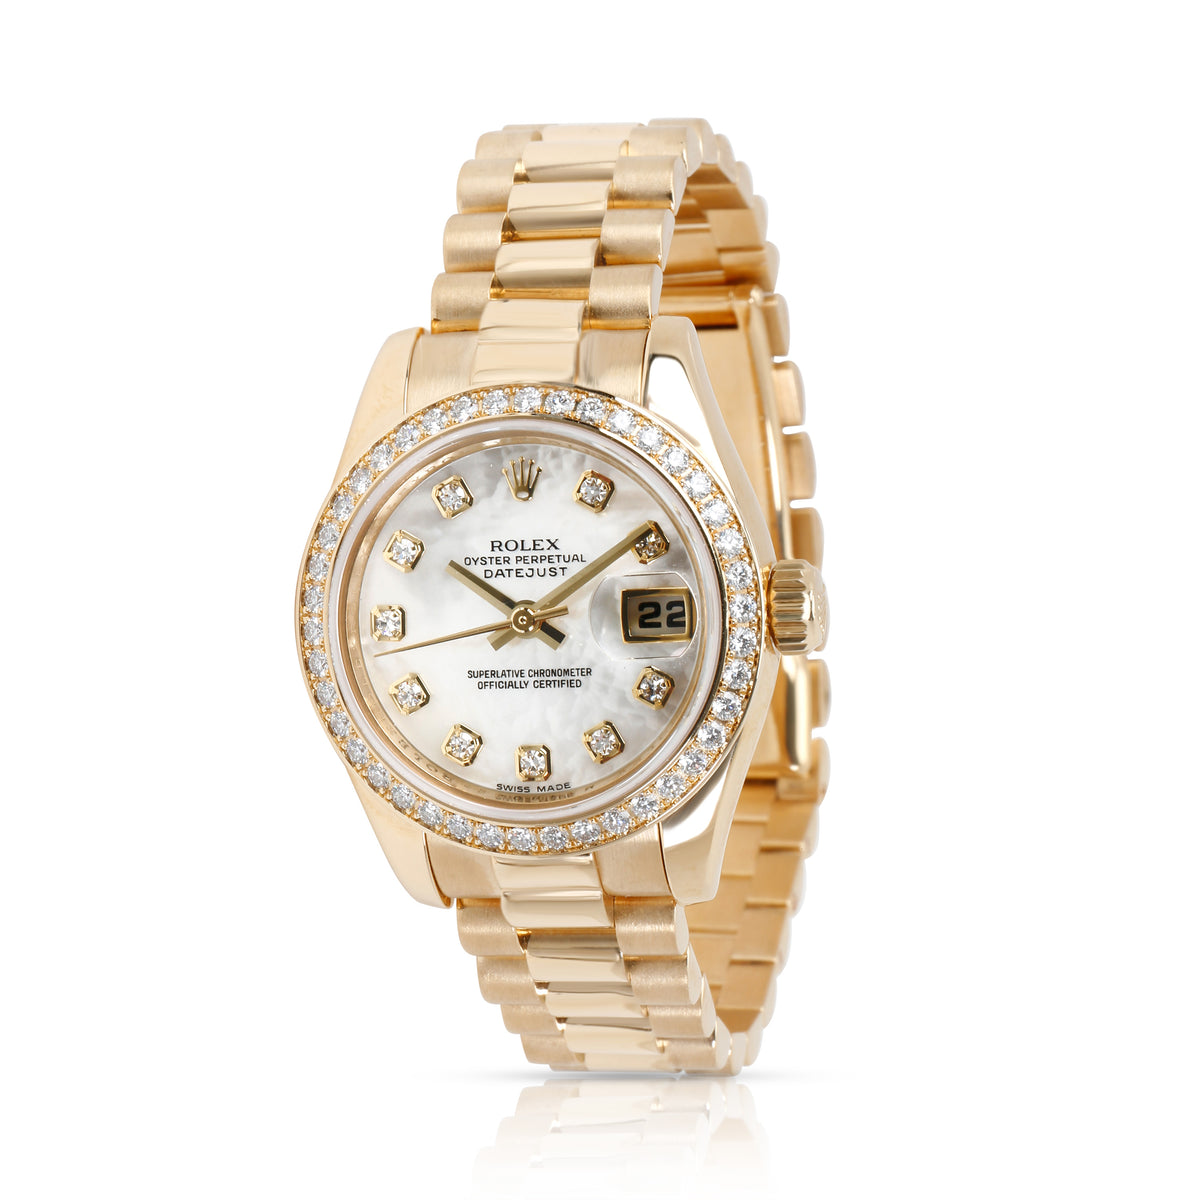 Rolex Datejust 179178 Women's Watch in 18kt Yellow Gold